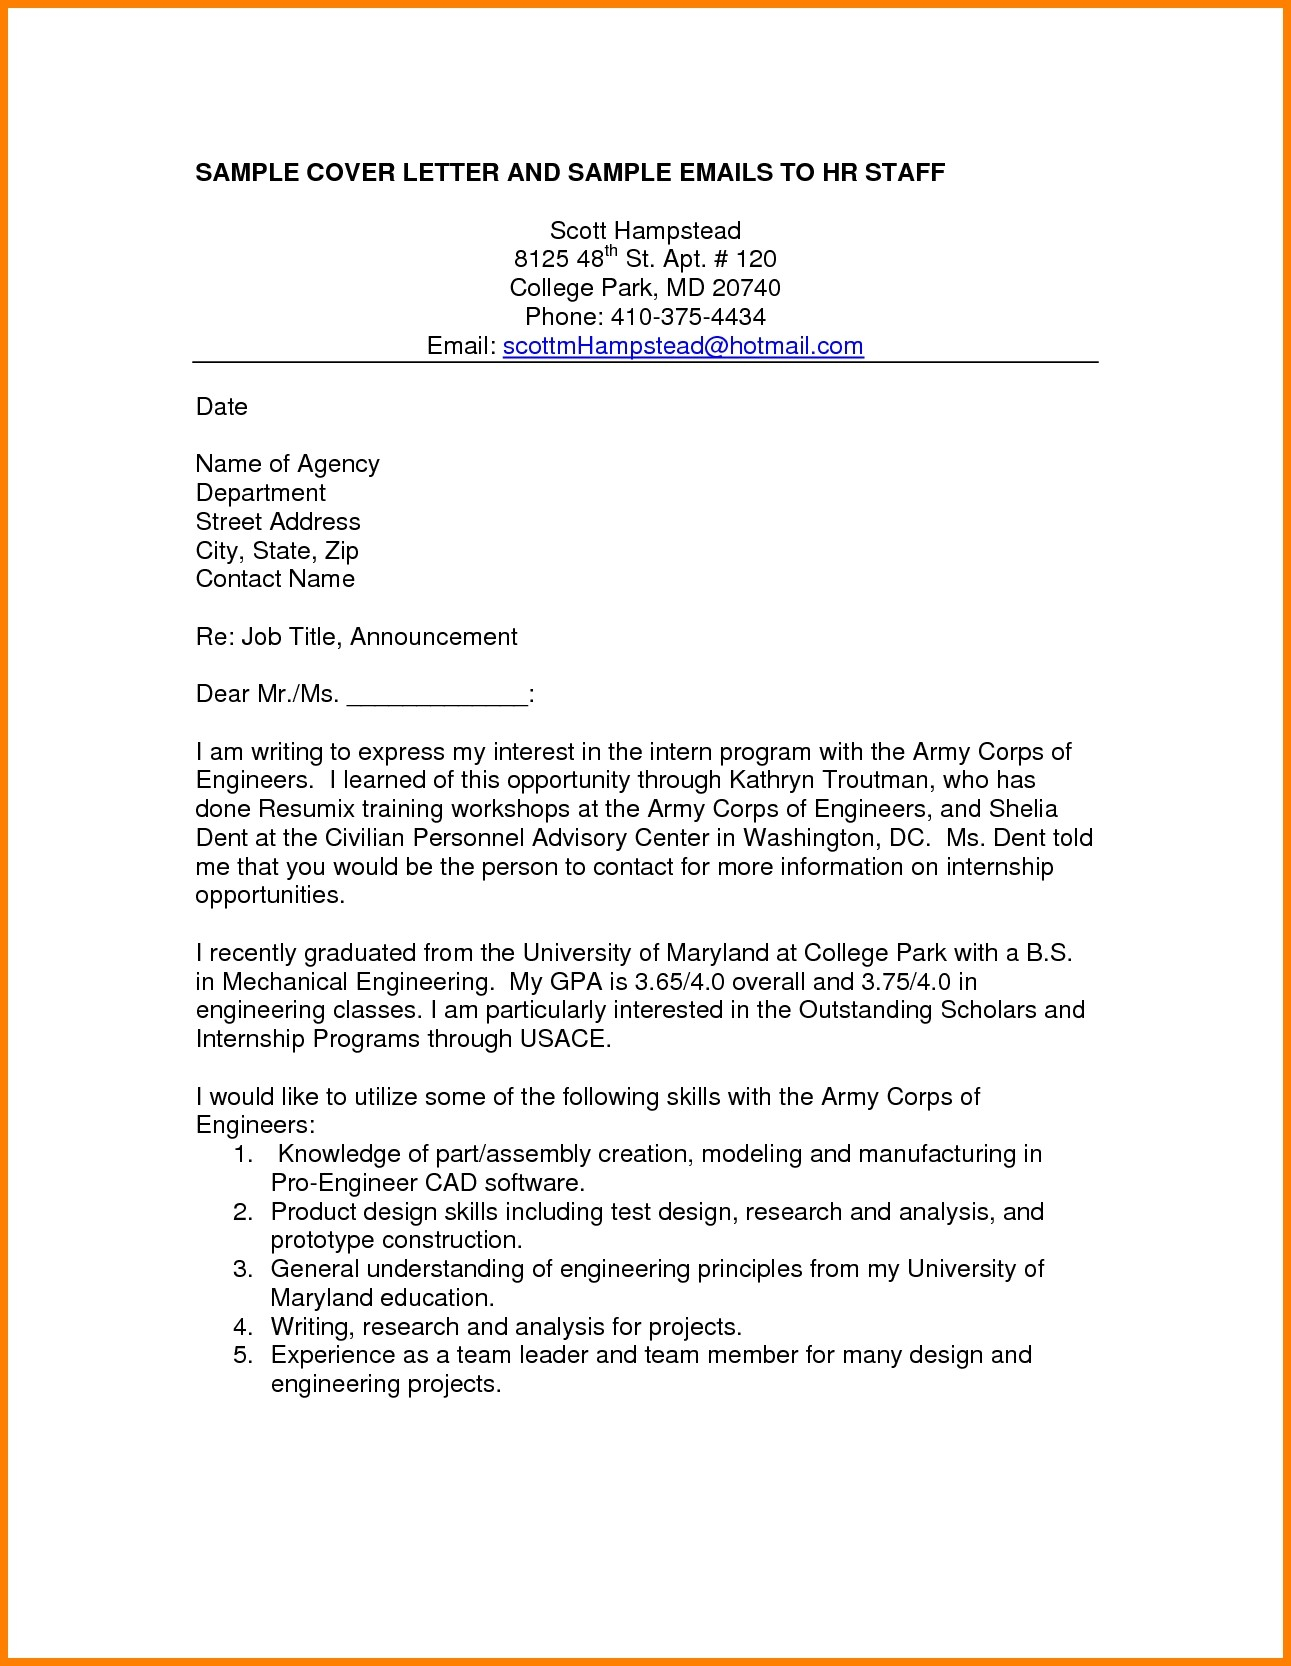 Samples Of Cover Letter  20 When Applying For A Job What Is A Cover Letter New Samples Of